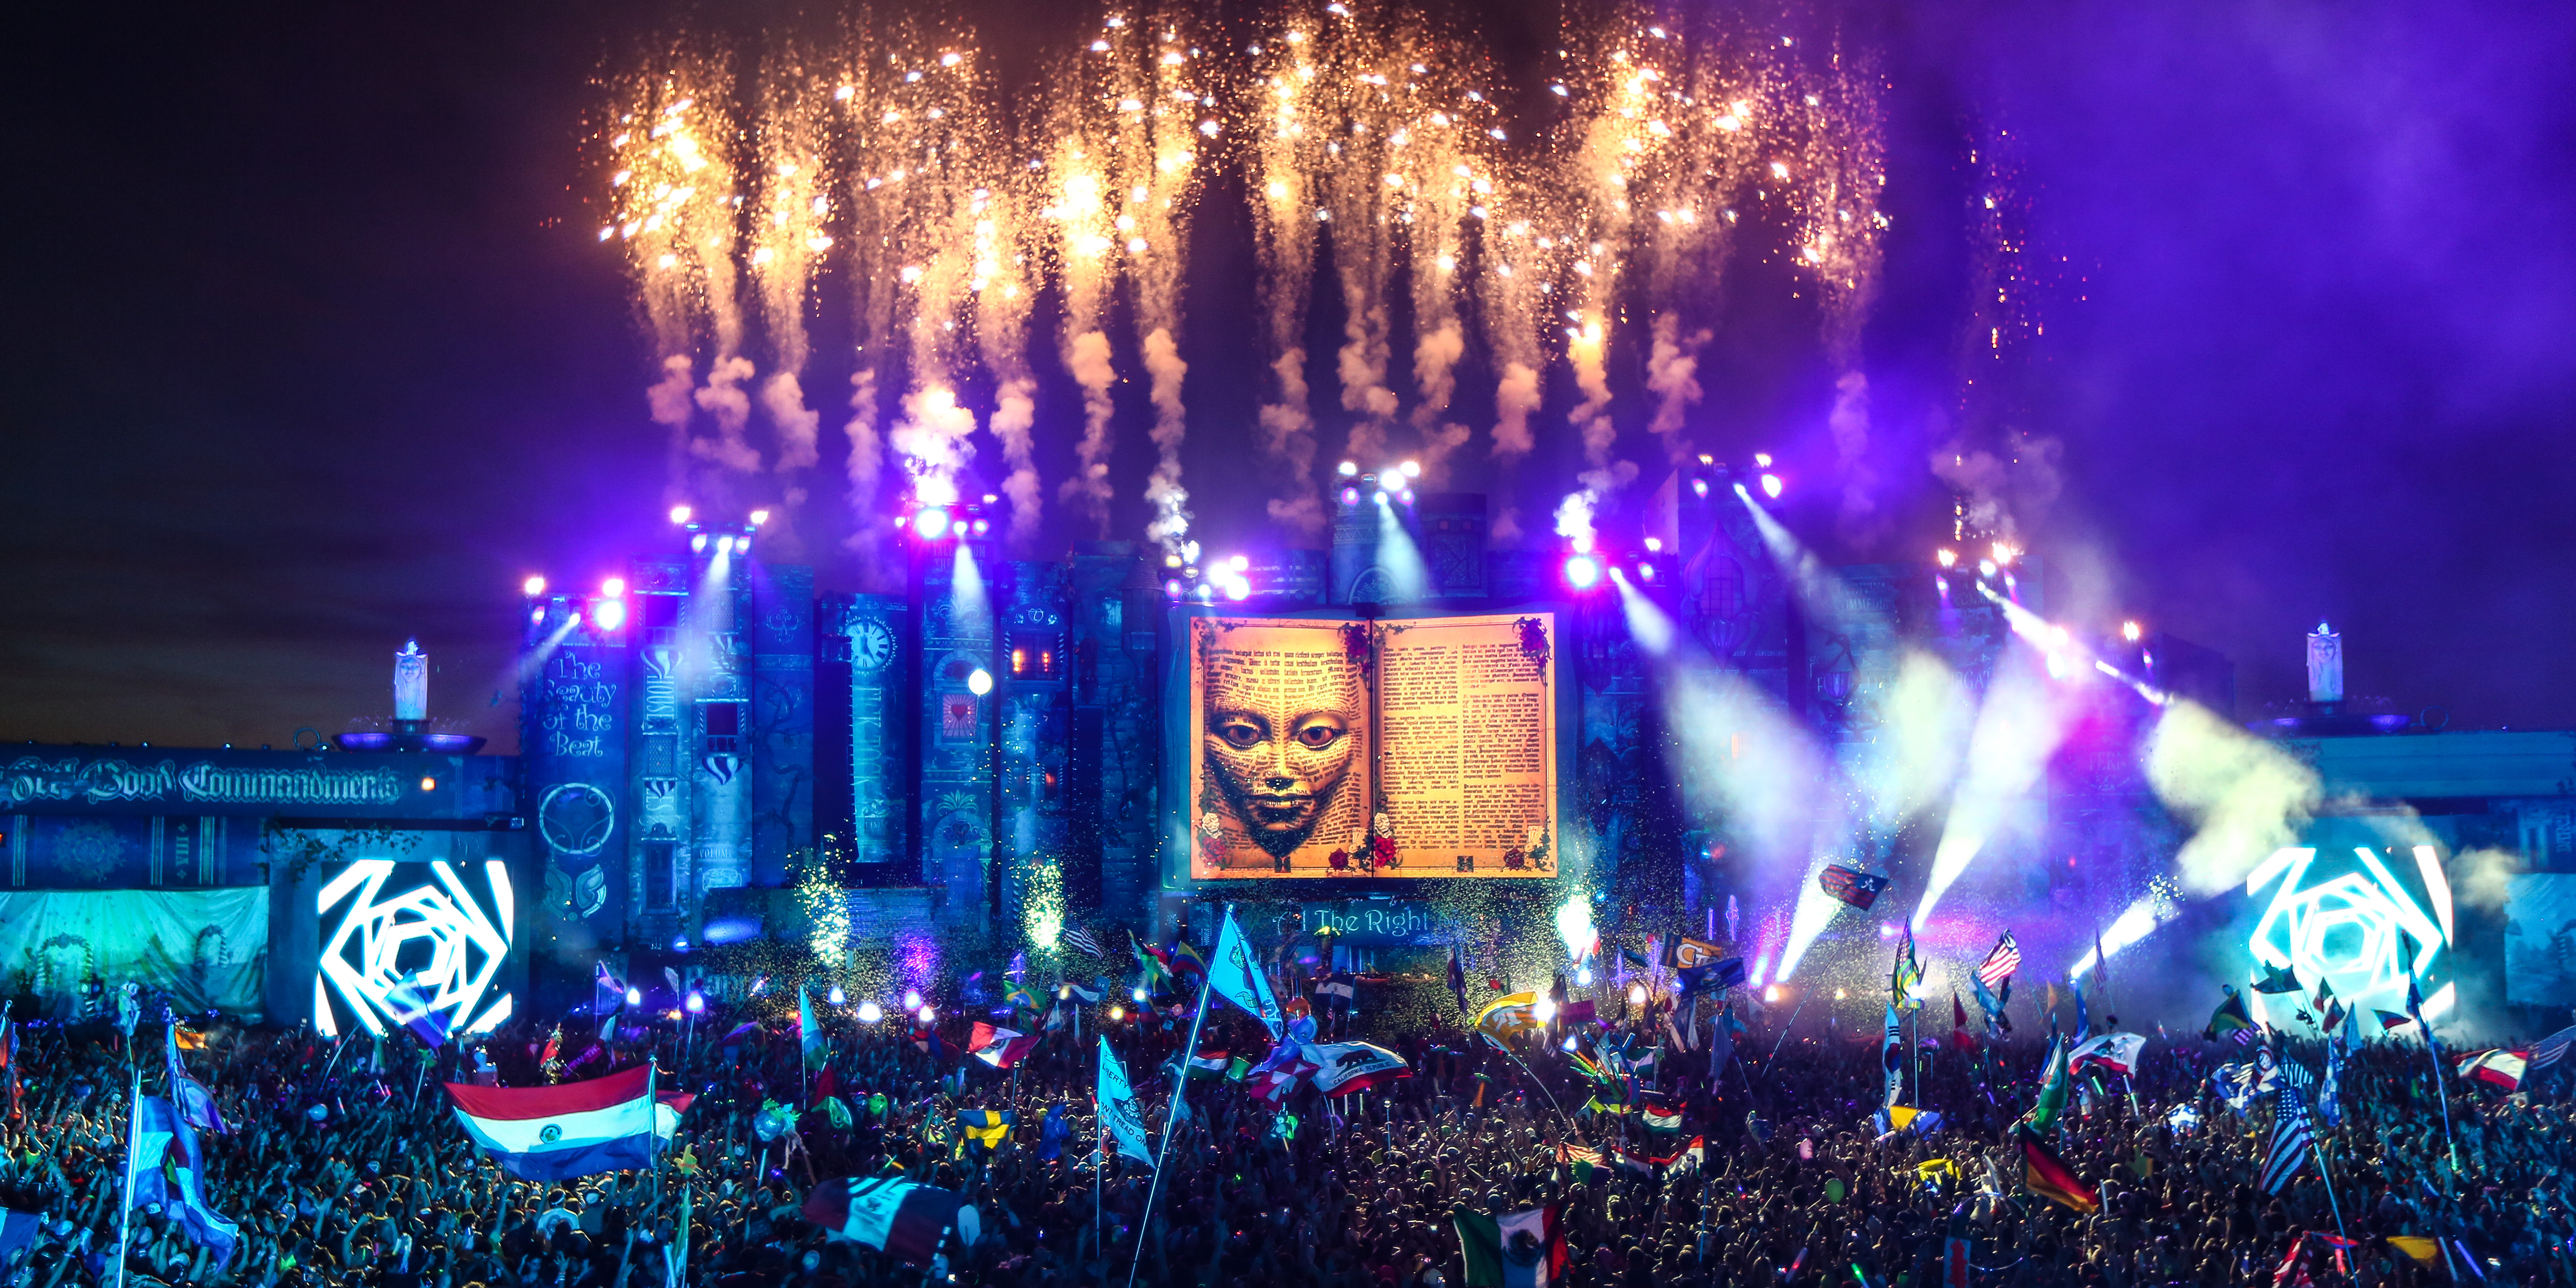 Press Release: Tomorrowland To Be Televised on MTV This Summer